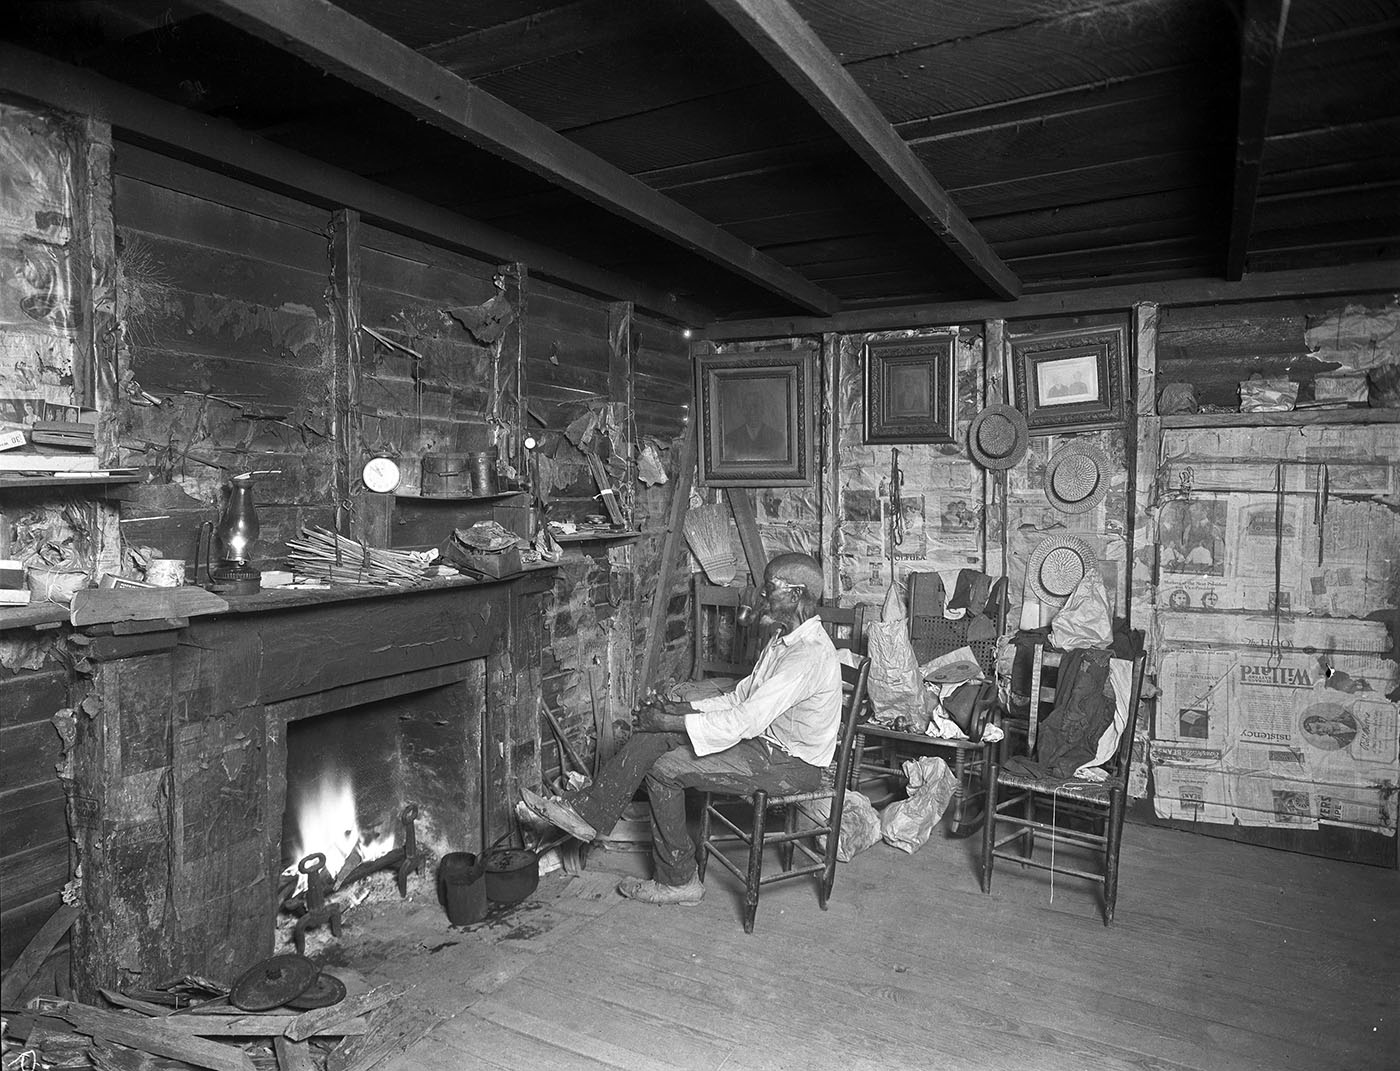 Cudjo Lewis at home. (Credit: Erik Overbey Collection, The Doy Leale McCall Rare Book and Manuscript Library, University of South Alabama)